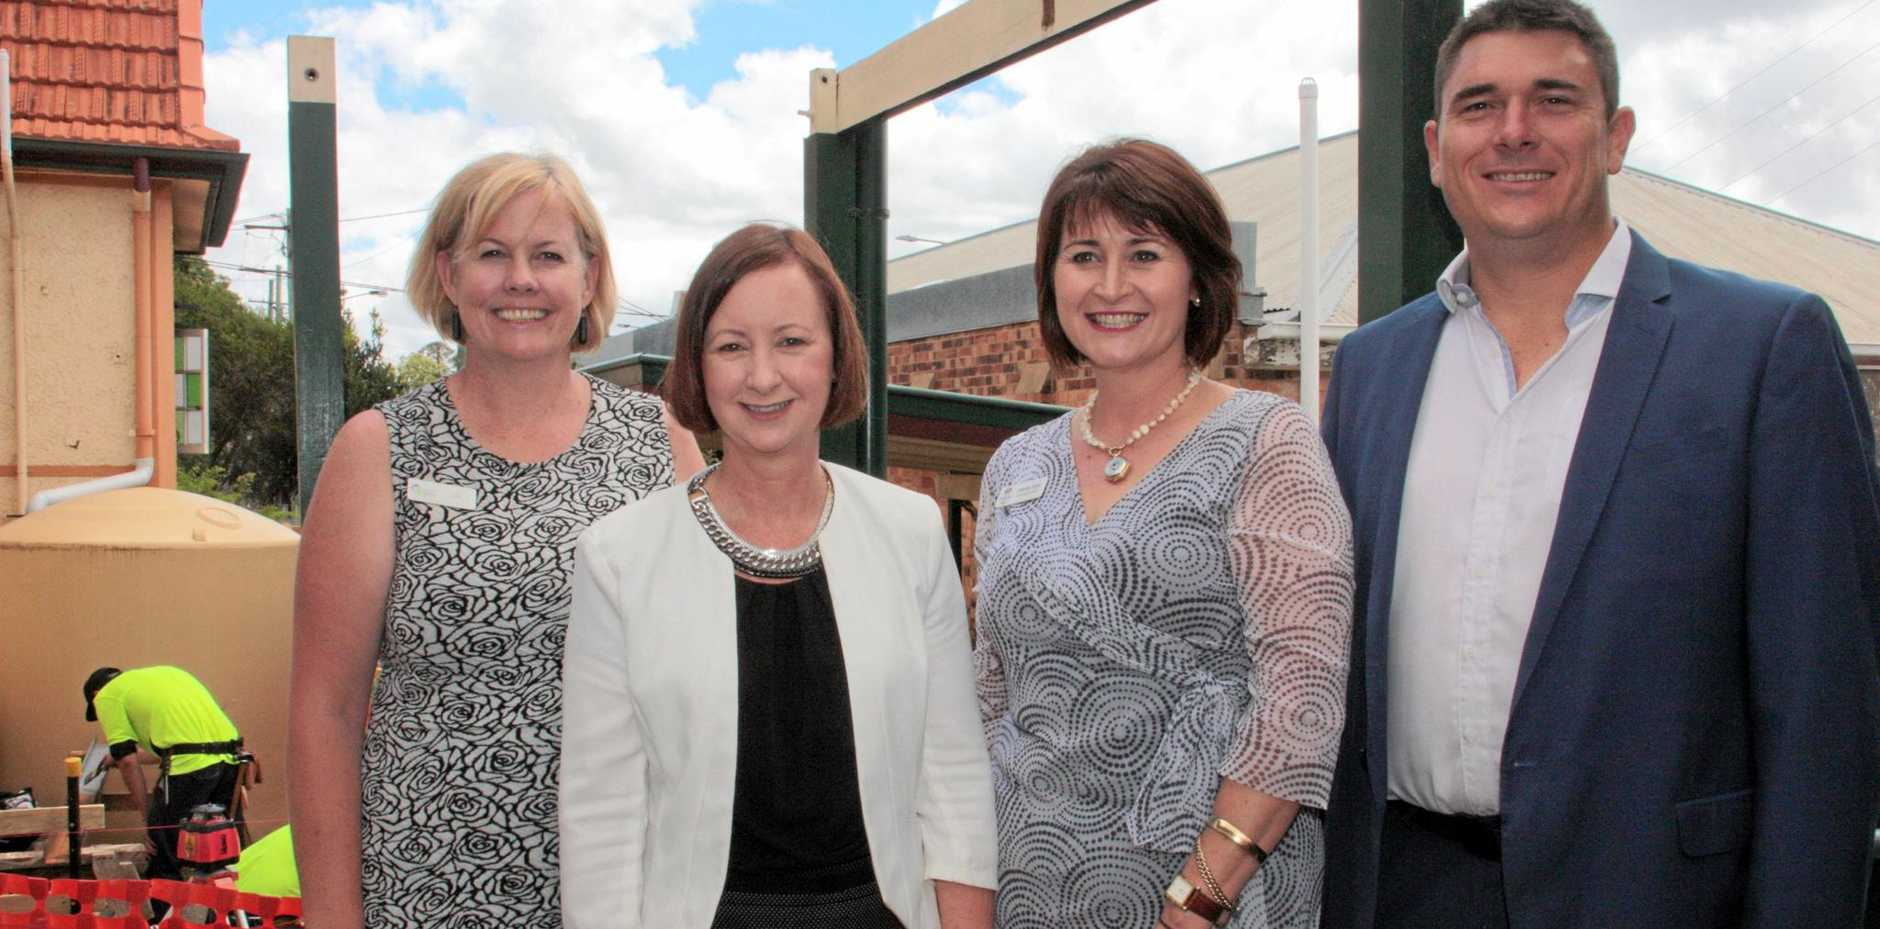 SKILLING WORKERS: Celebrating more funding for Toowoomba organisations are (from left) Toowoomba Clubhouse CEO Jo Sheppard, Minister for Training and Skills Yvette D'Ath, Sunrise Way CEO Wendy Agar and Downs Group Training CEO Darren McDonell.